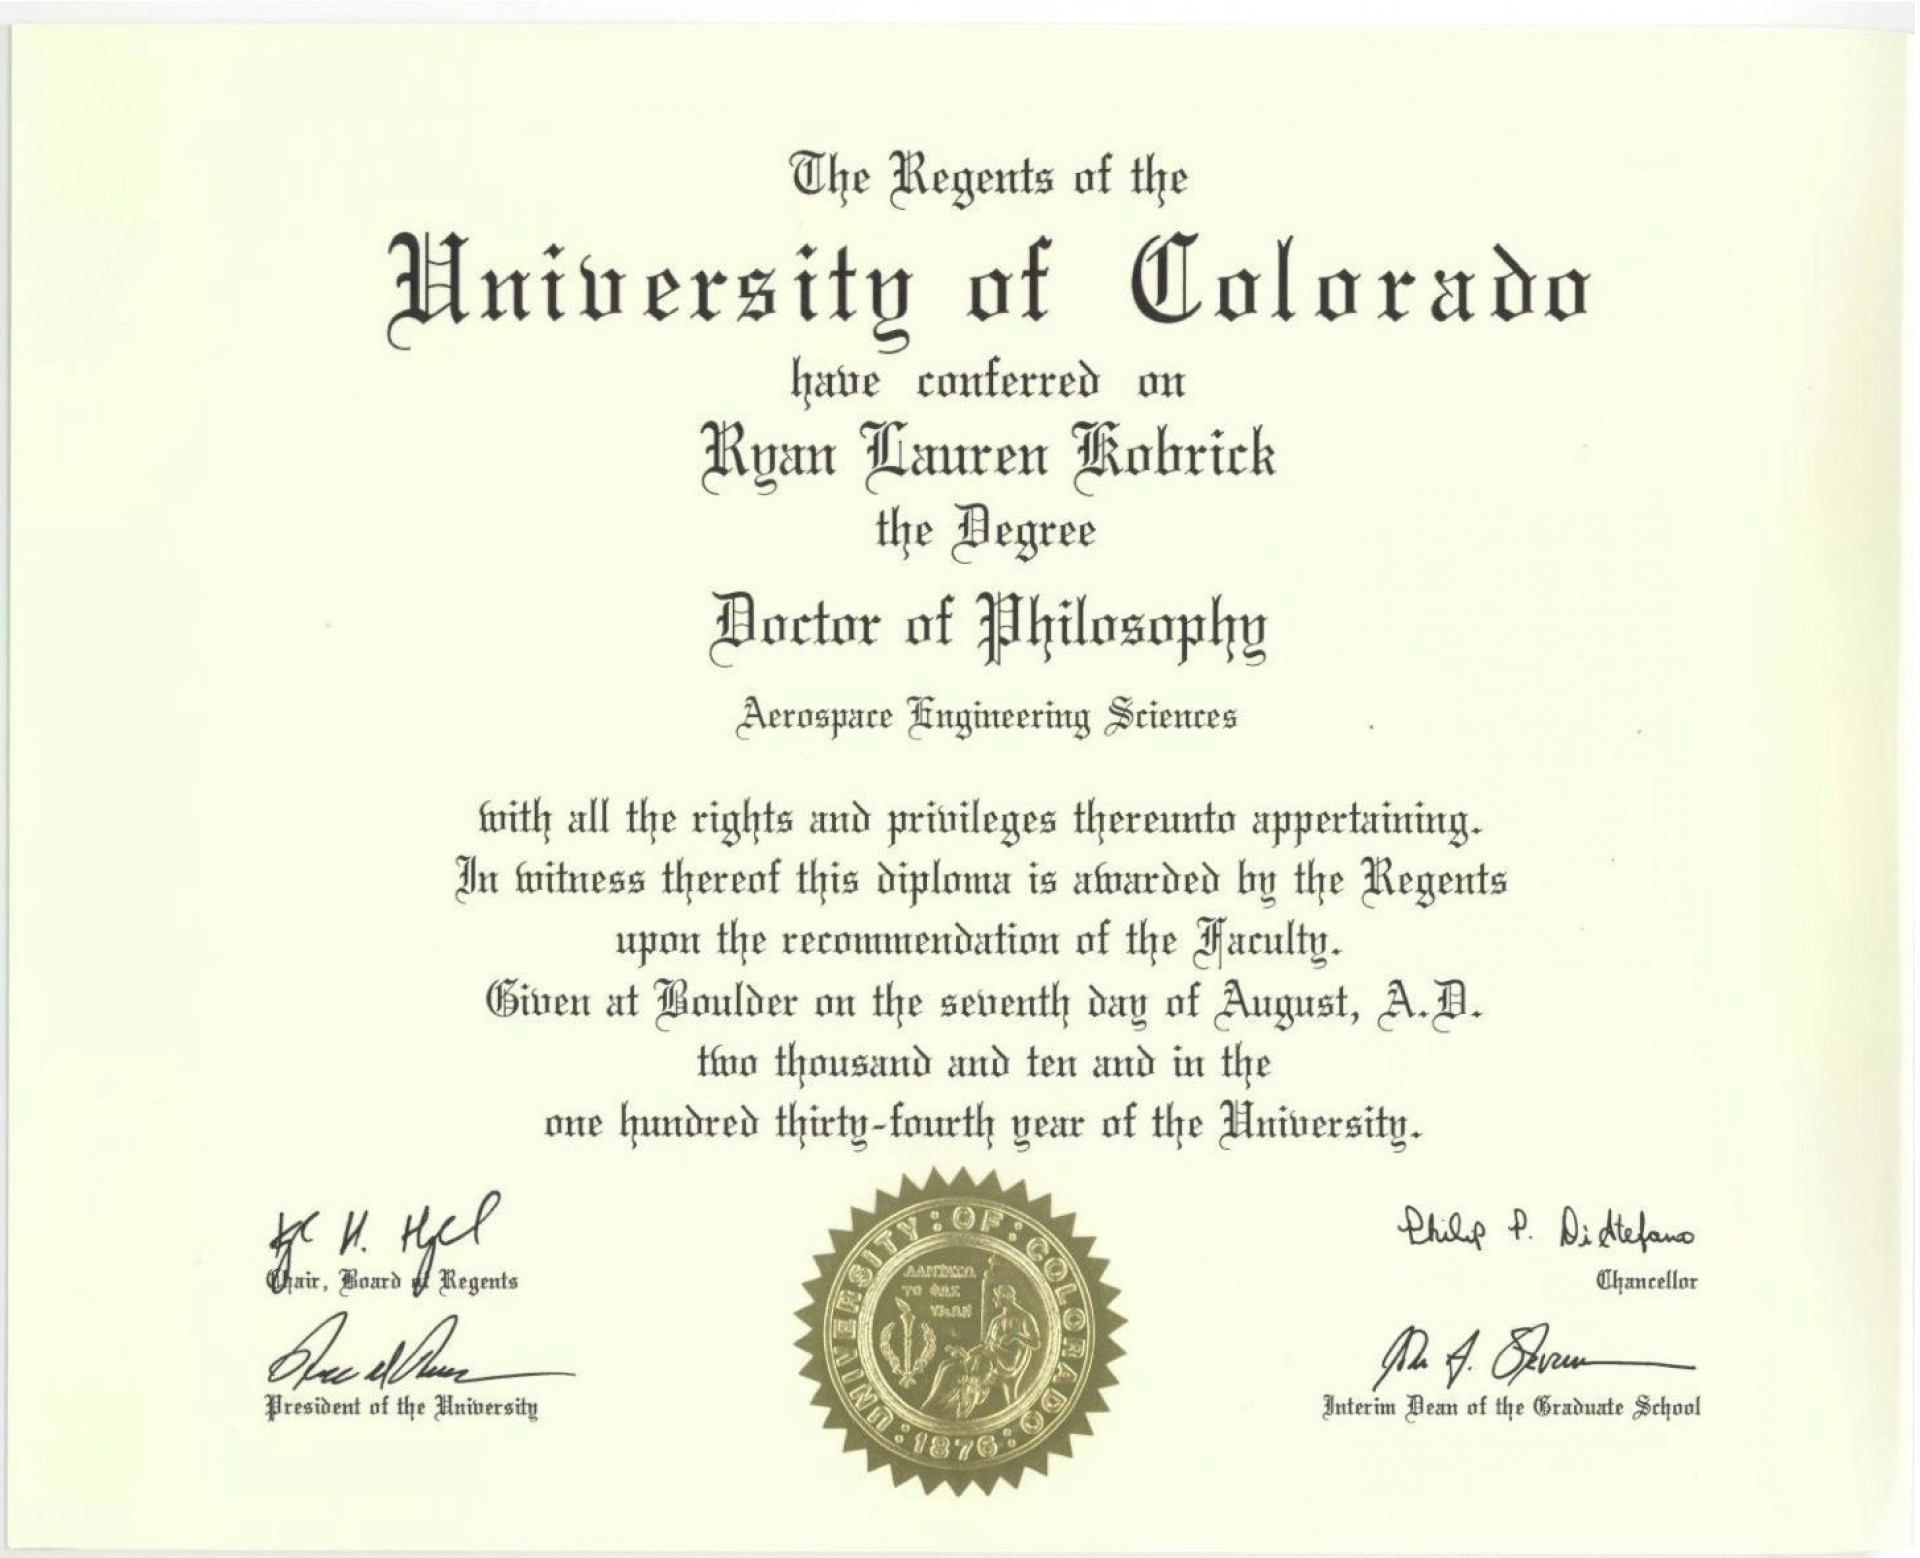 007 Phenomenal Degree Certificate Template Word High Definition 1920